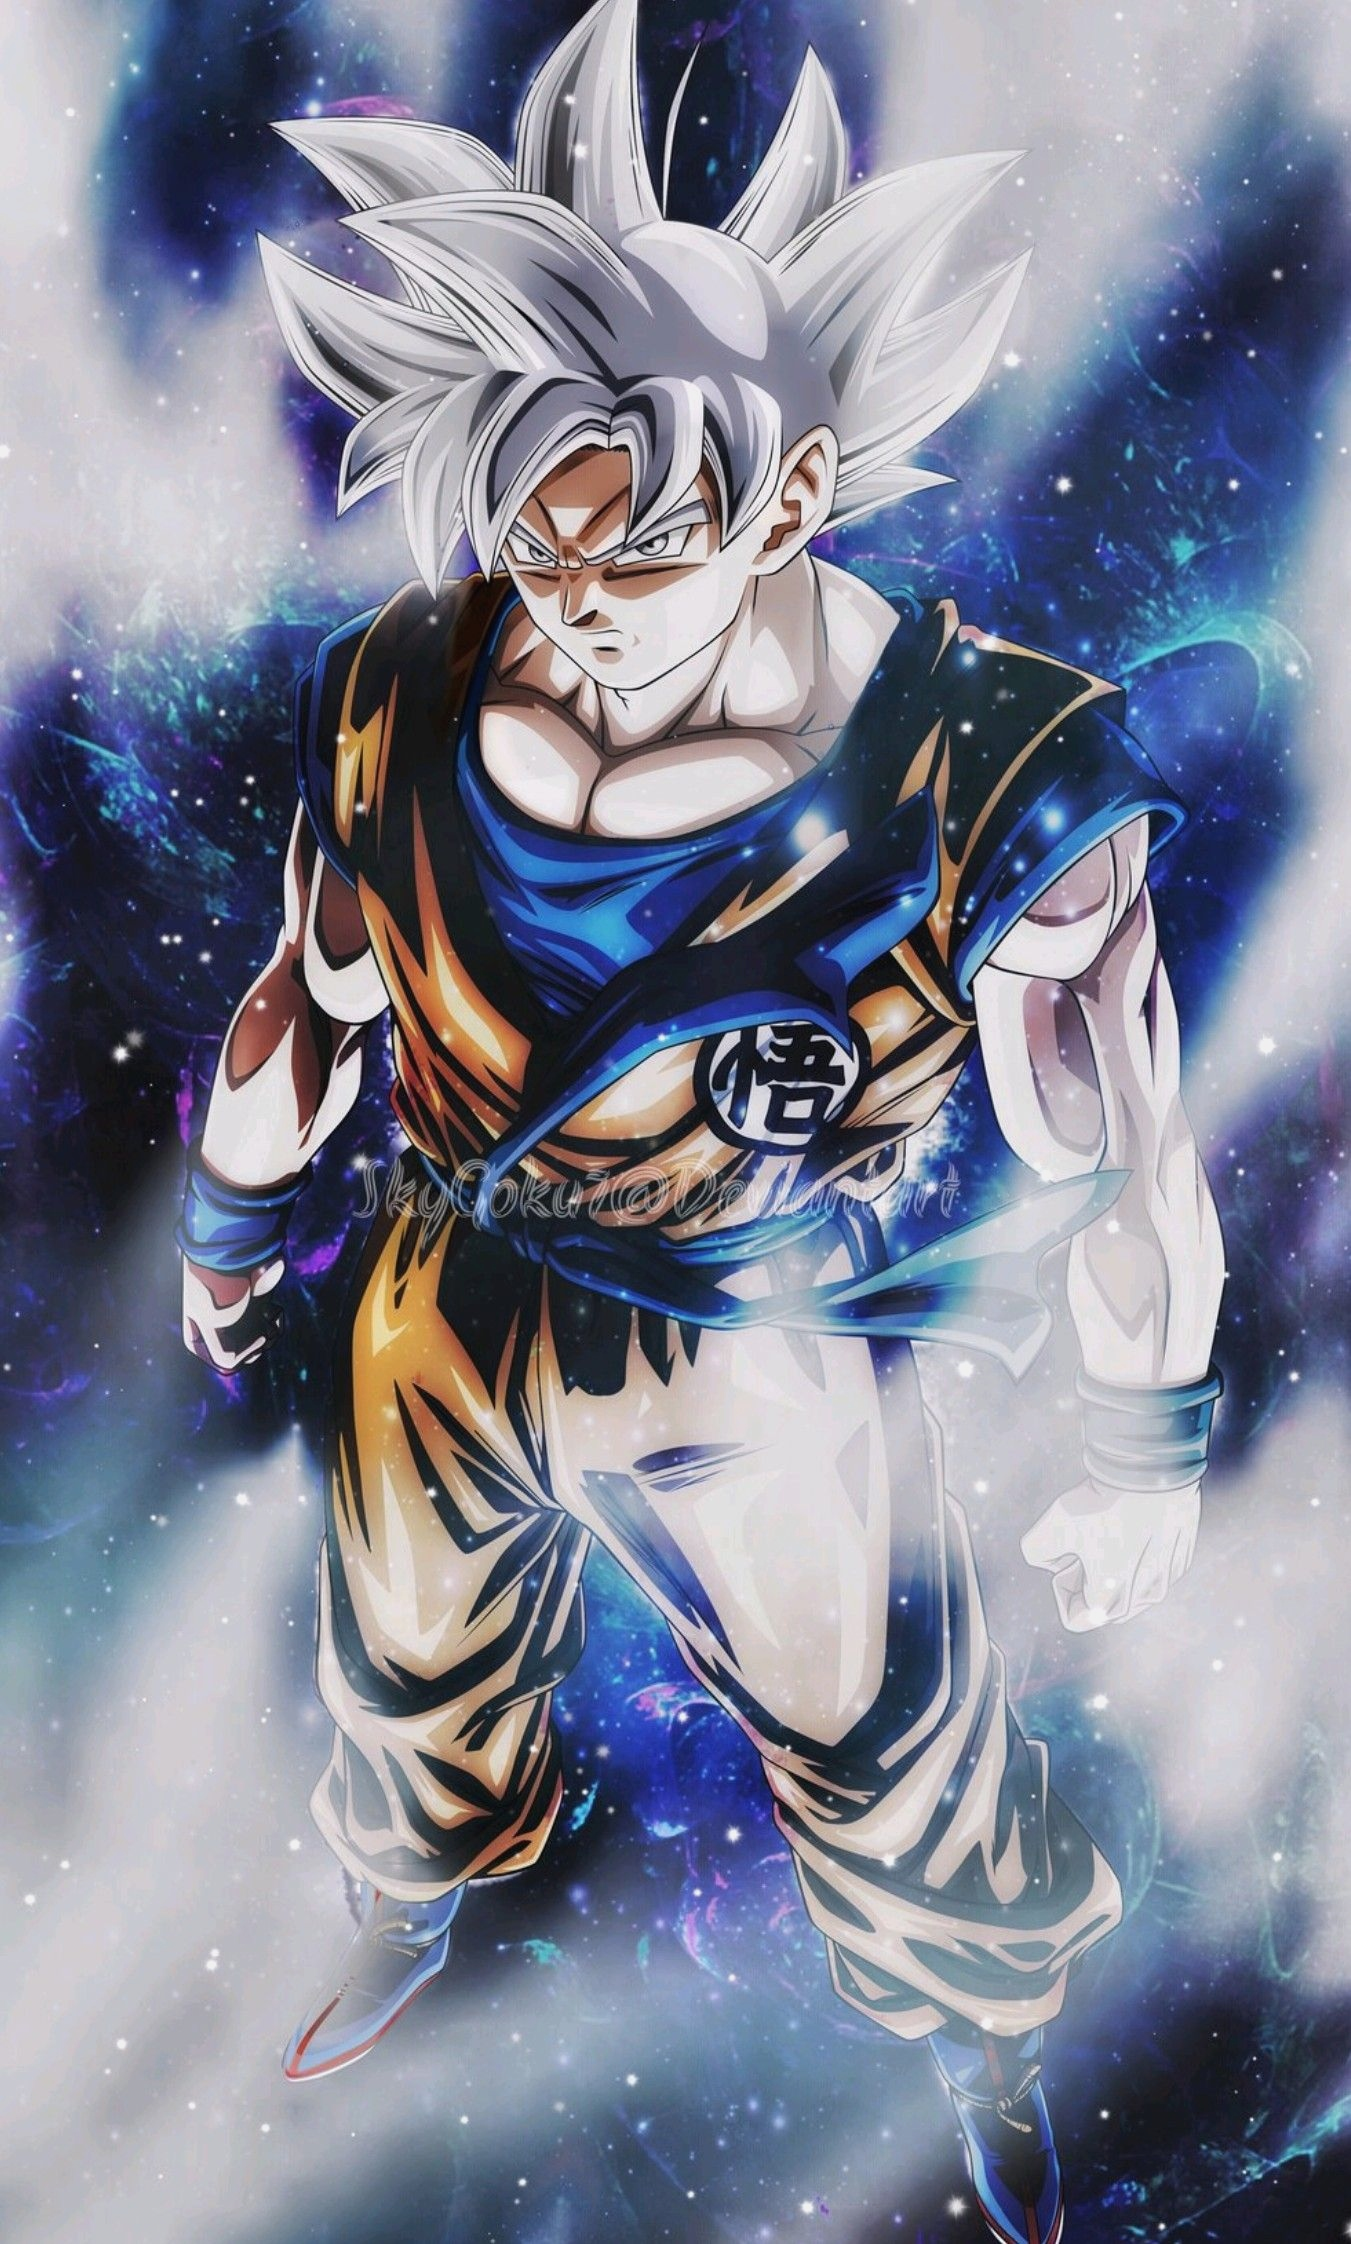 Dragon Ball Super Goku Ultra Instinct 2247742 Hd Wallpaper Backgrounds Download